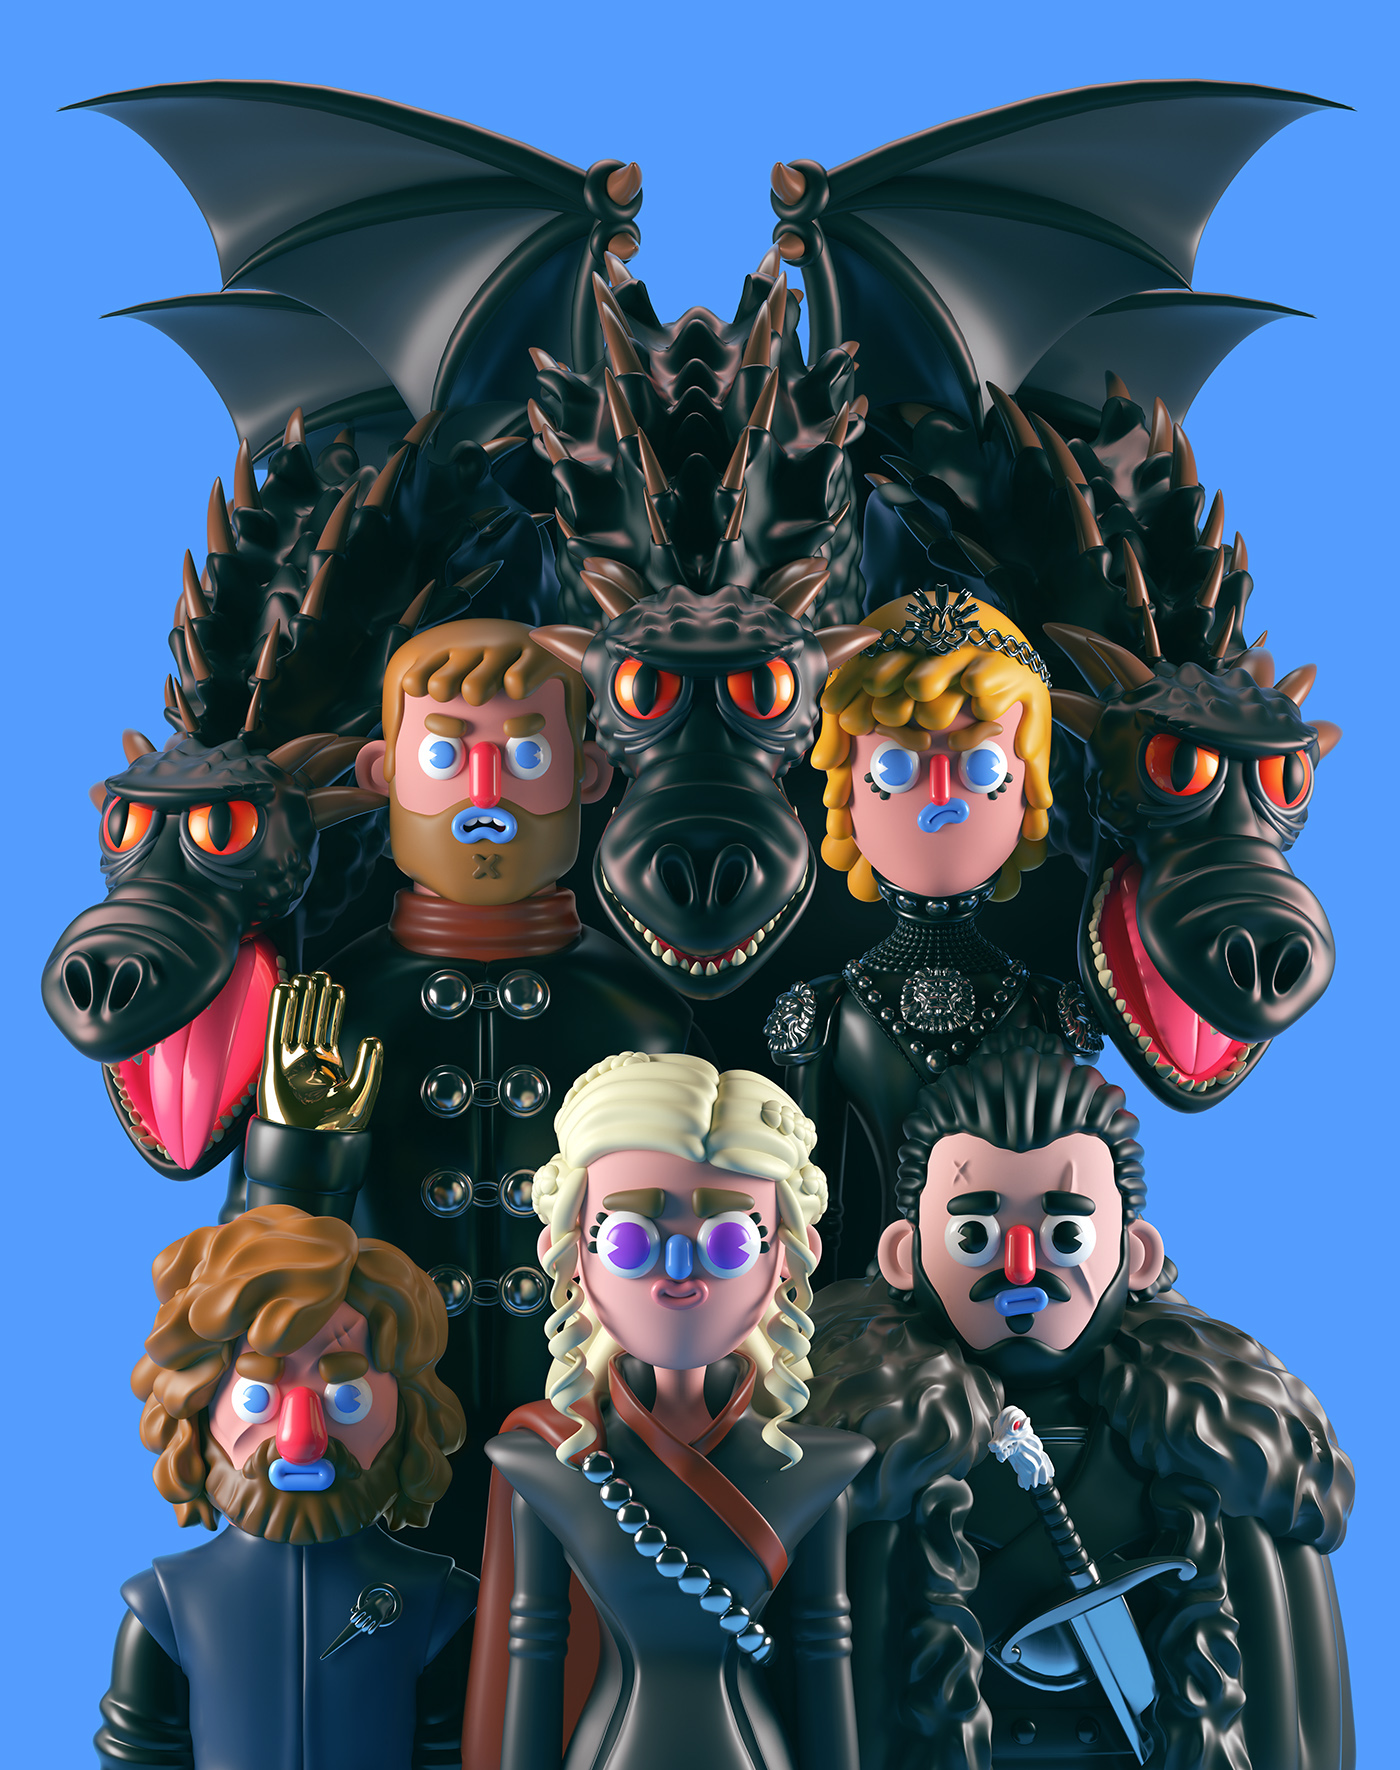 games of thrones comic art - Conoce los personajes de Games of Thrones en 3D (Fan Art)